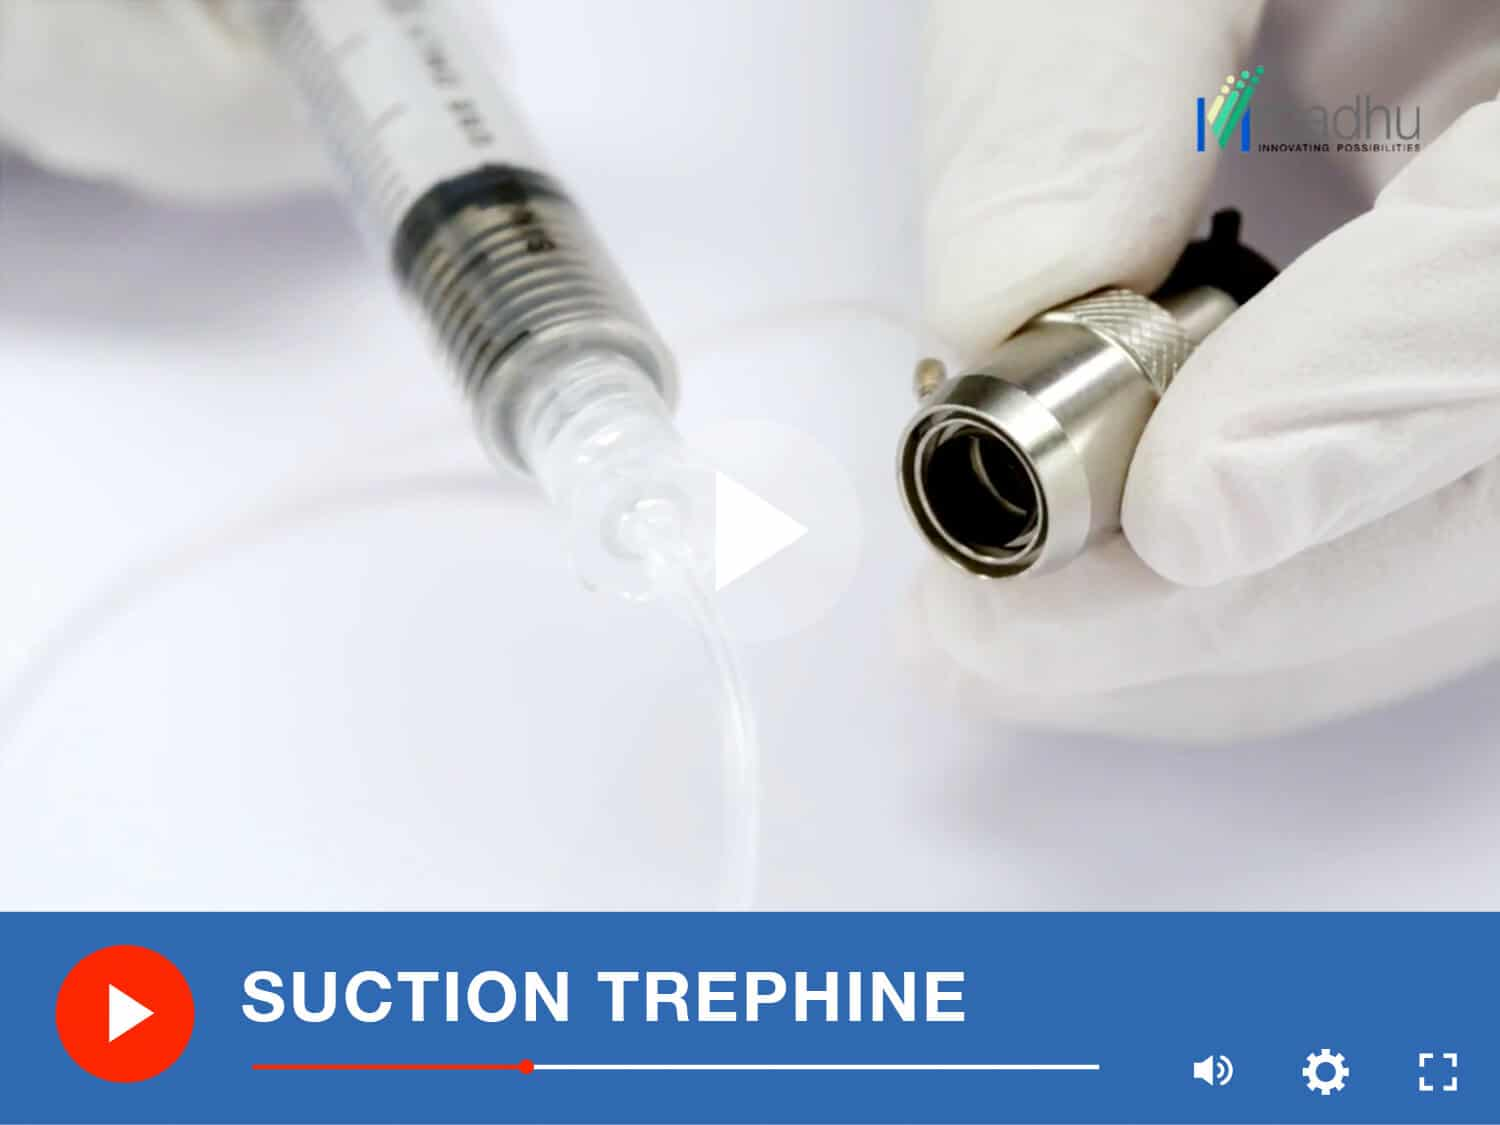 SUCTION TREPHINE